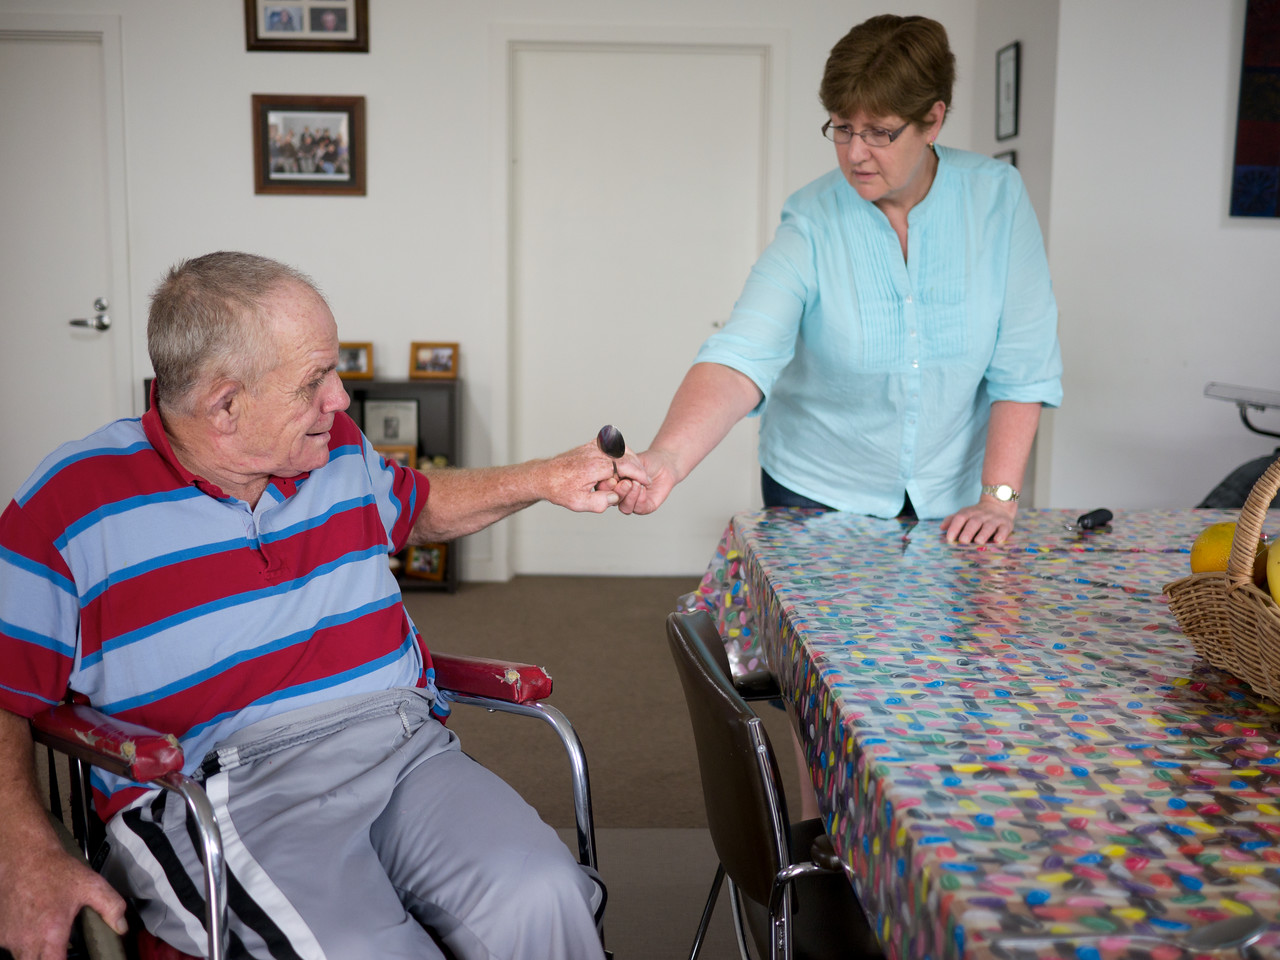 A home carer is handing a spoon to a senior man with a disability as he sets a table in his home.